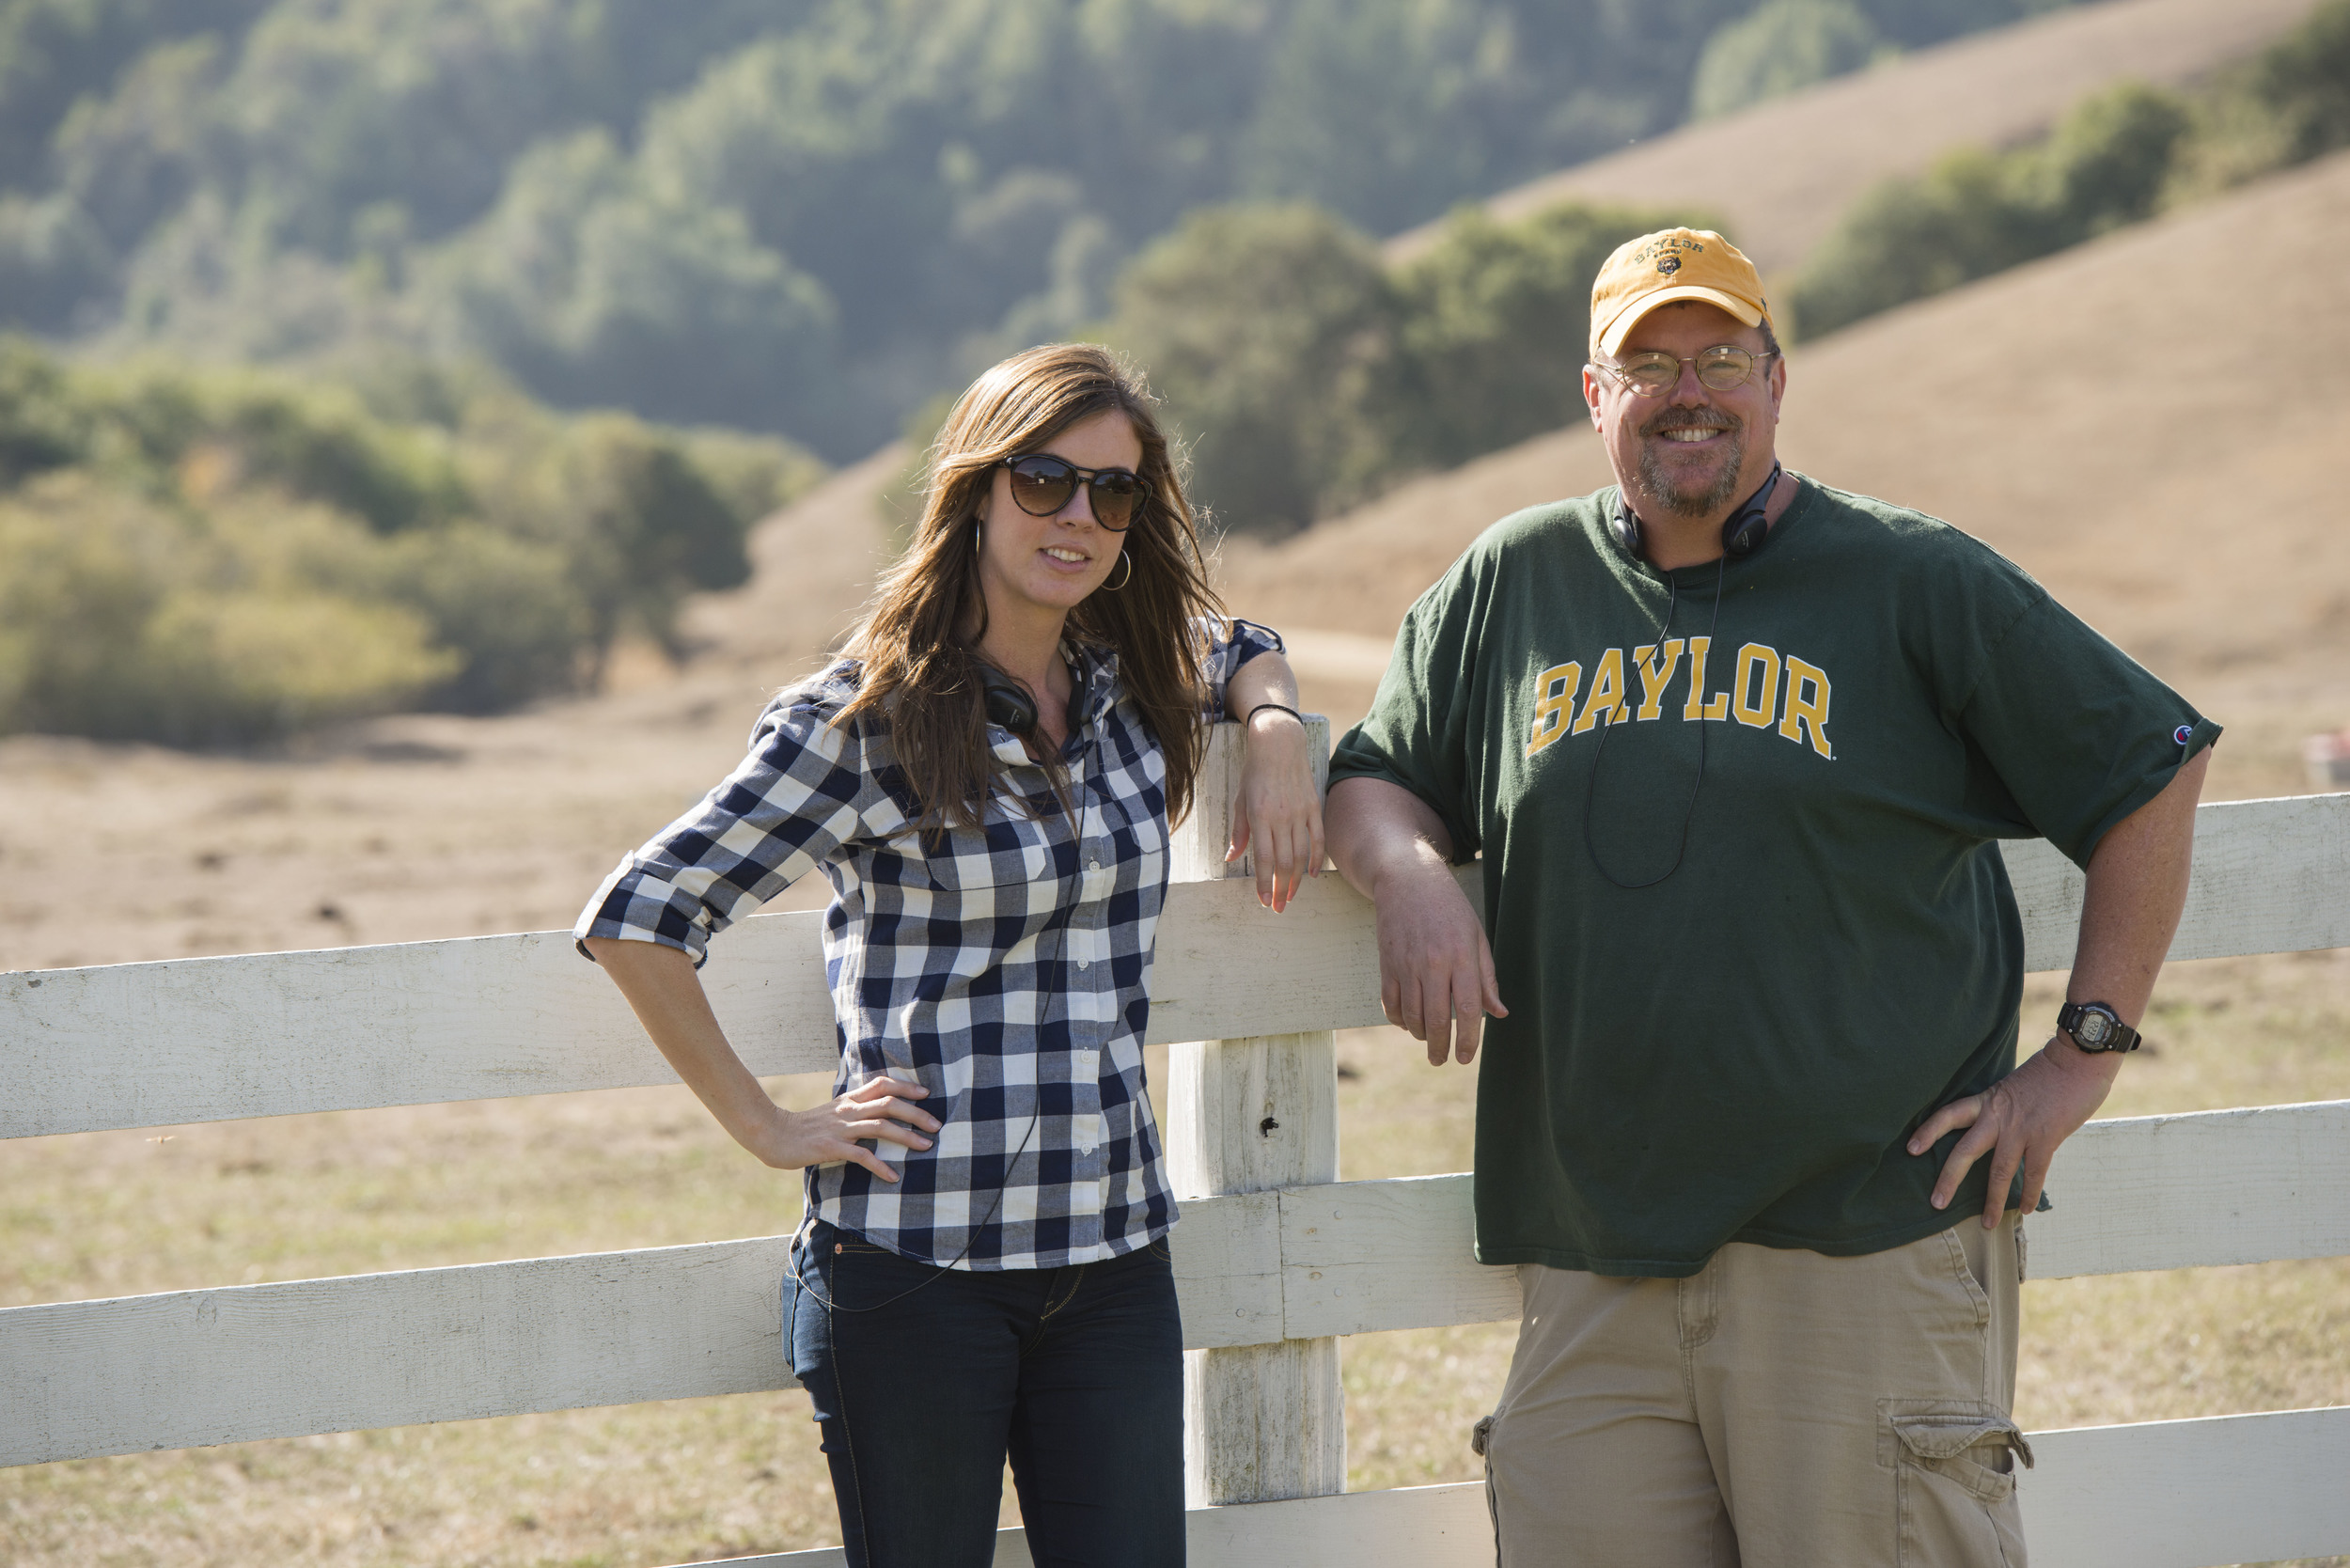 This was my partner and I on set. Photo courtesy of John Deere ®